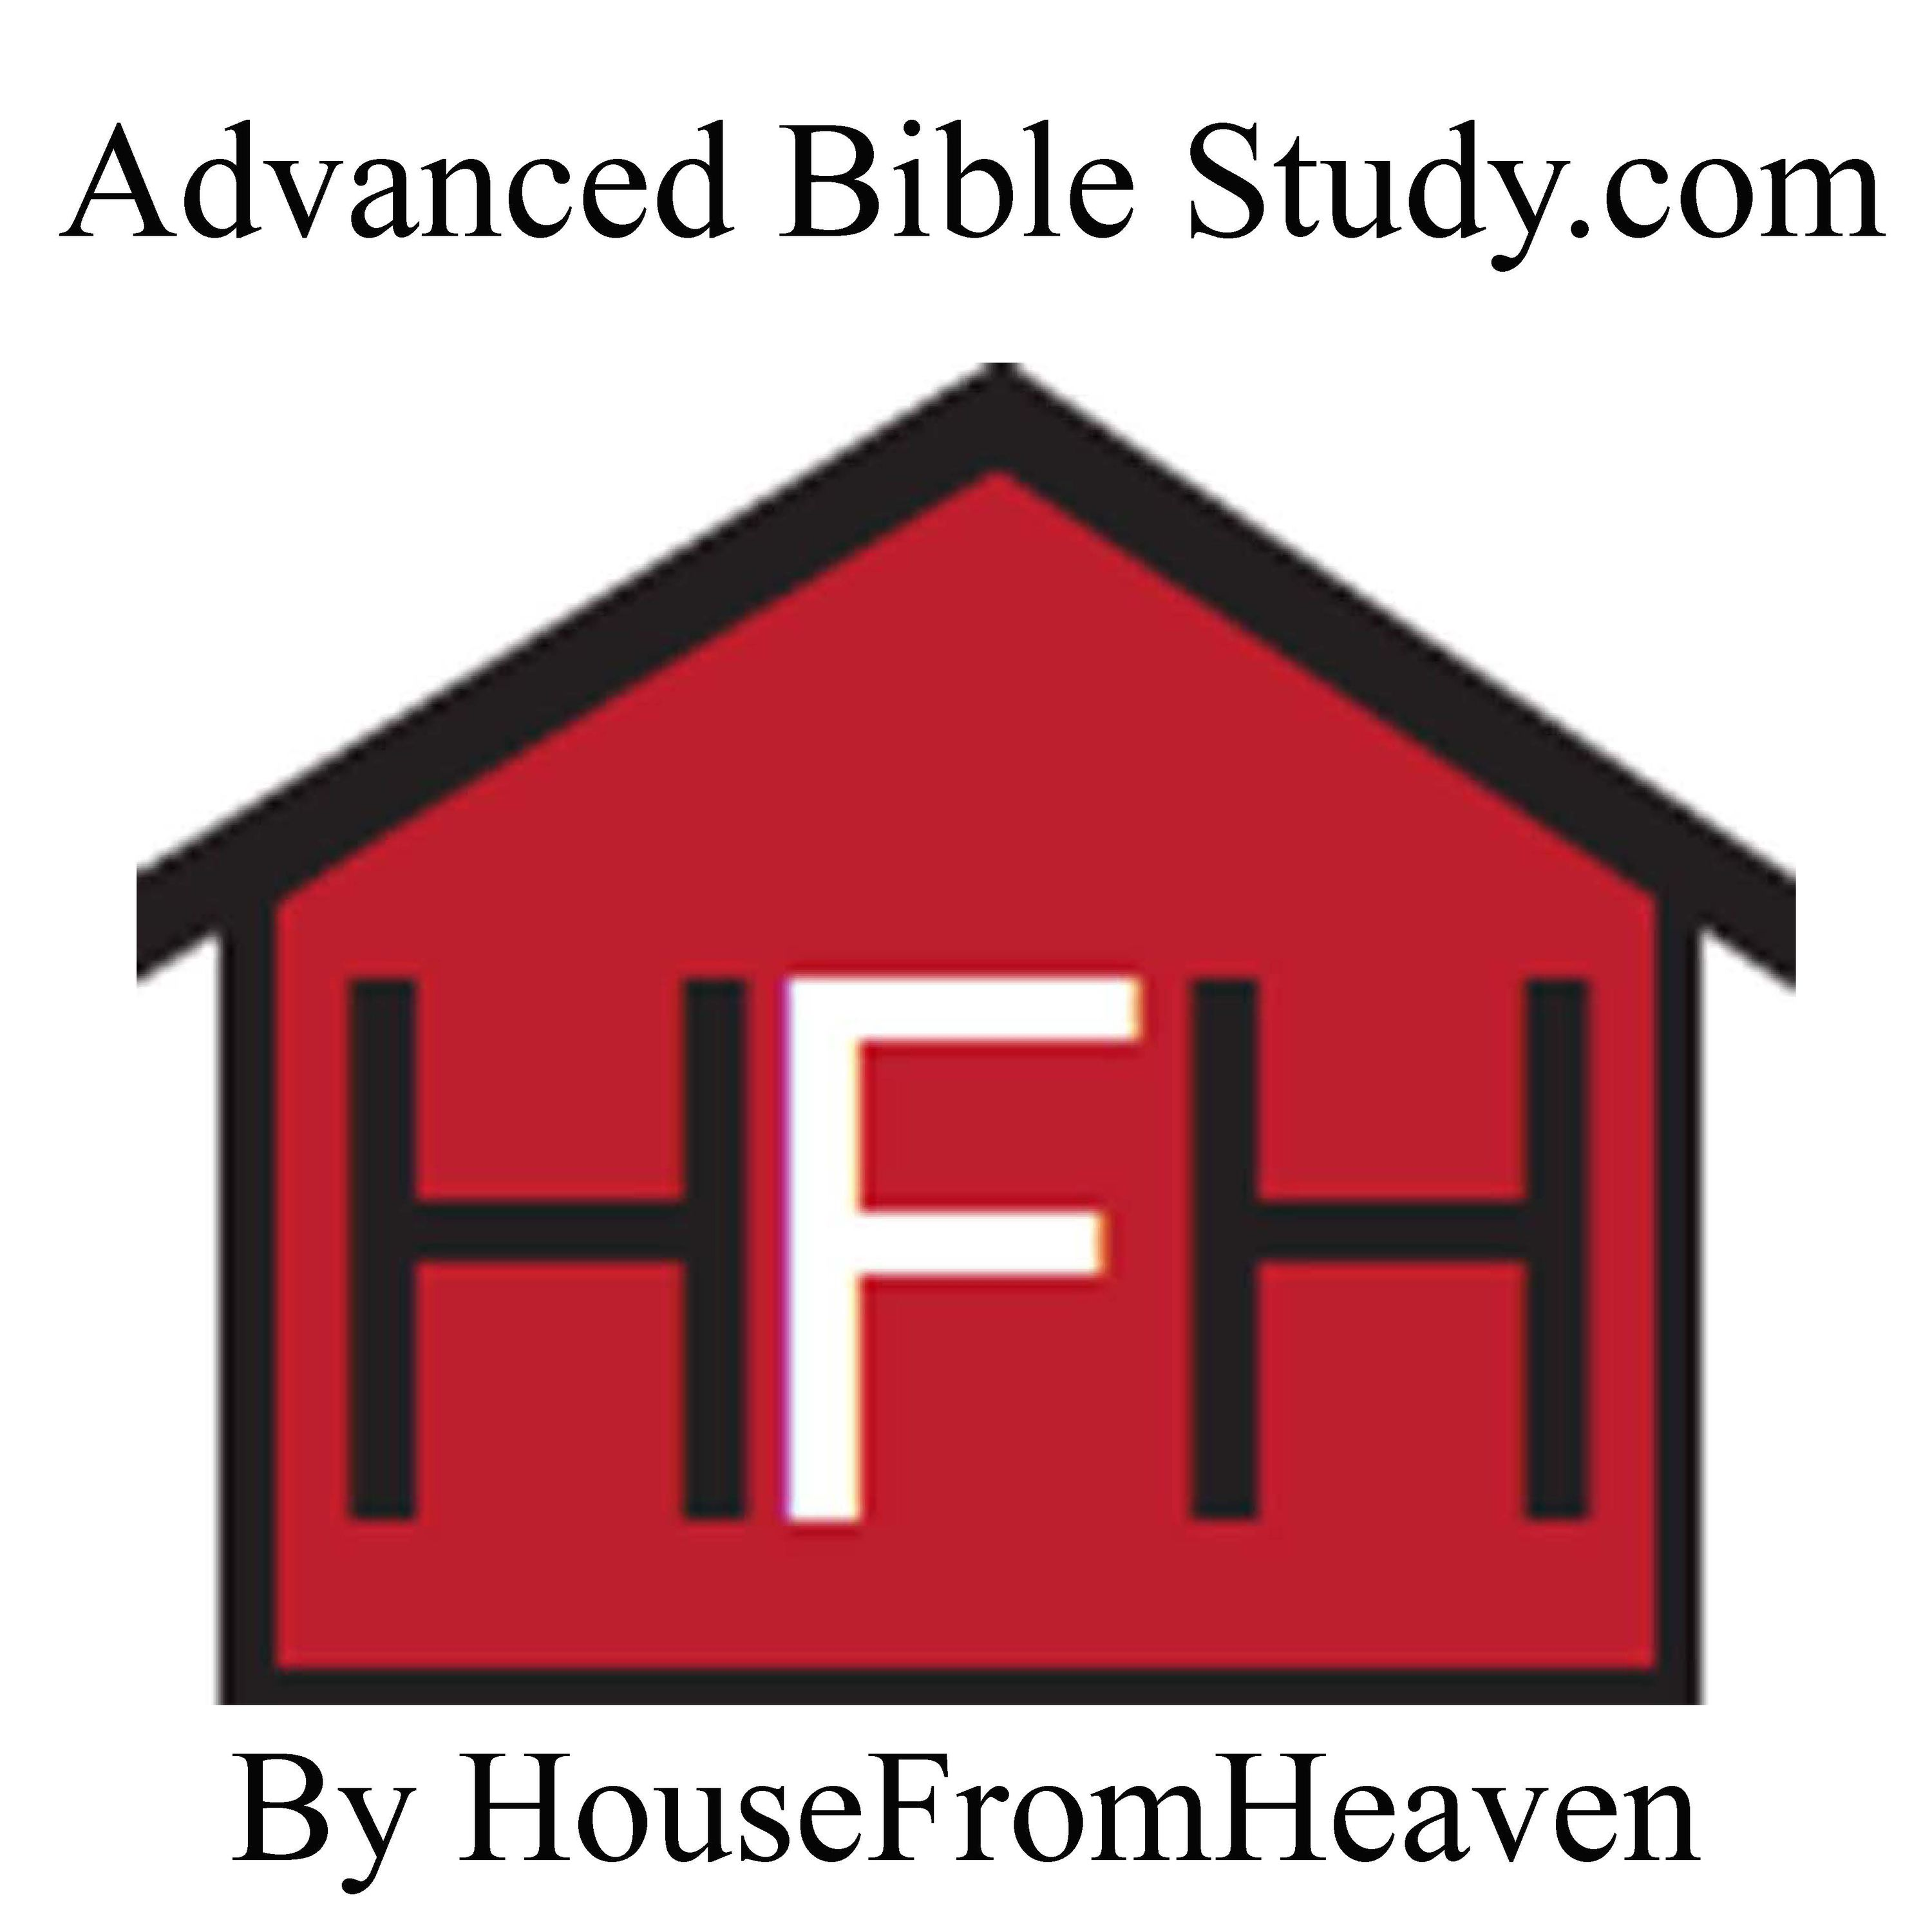 Advanced Bible Study